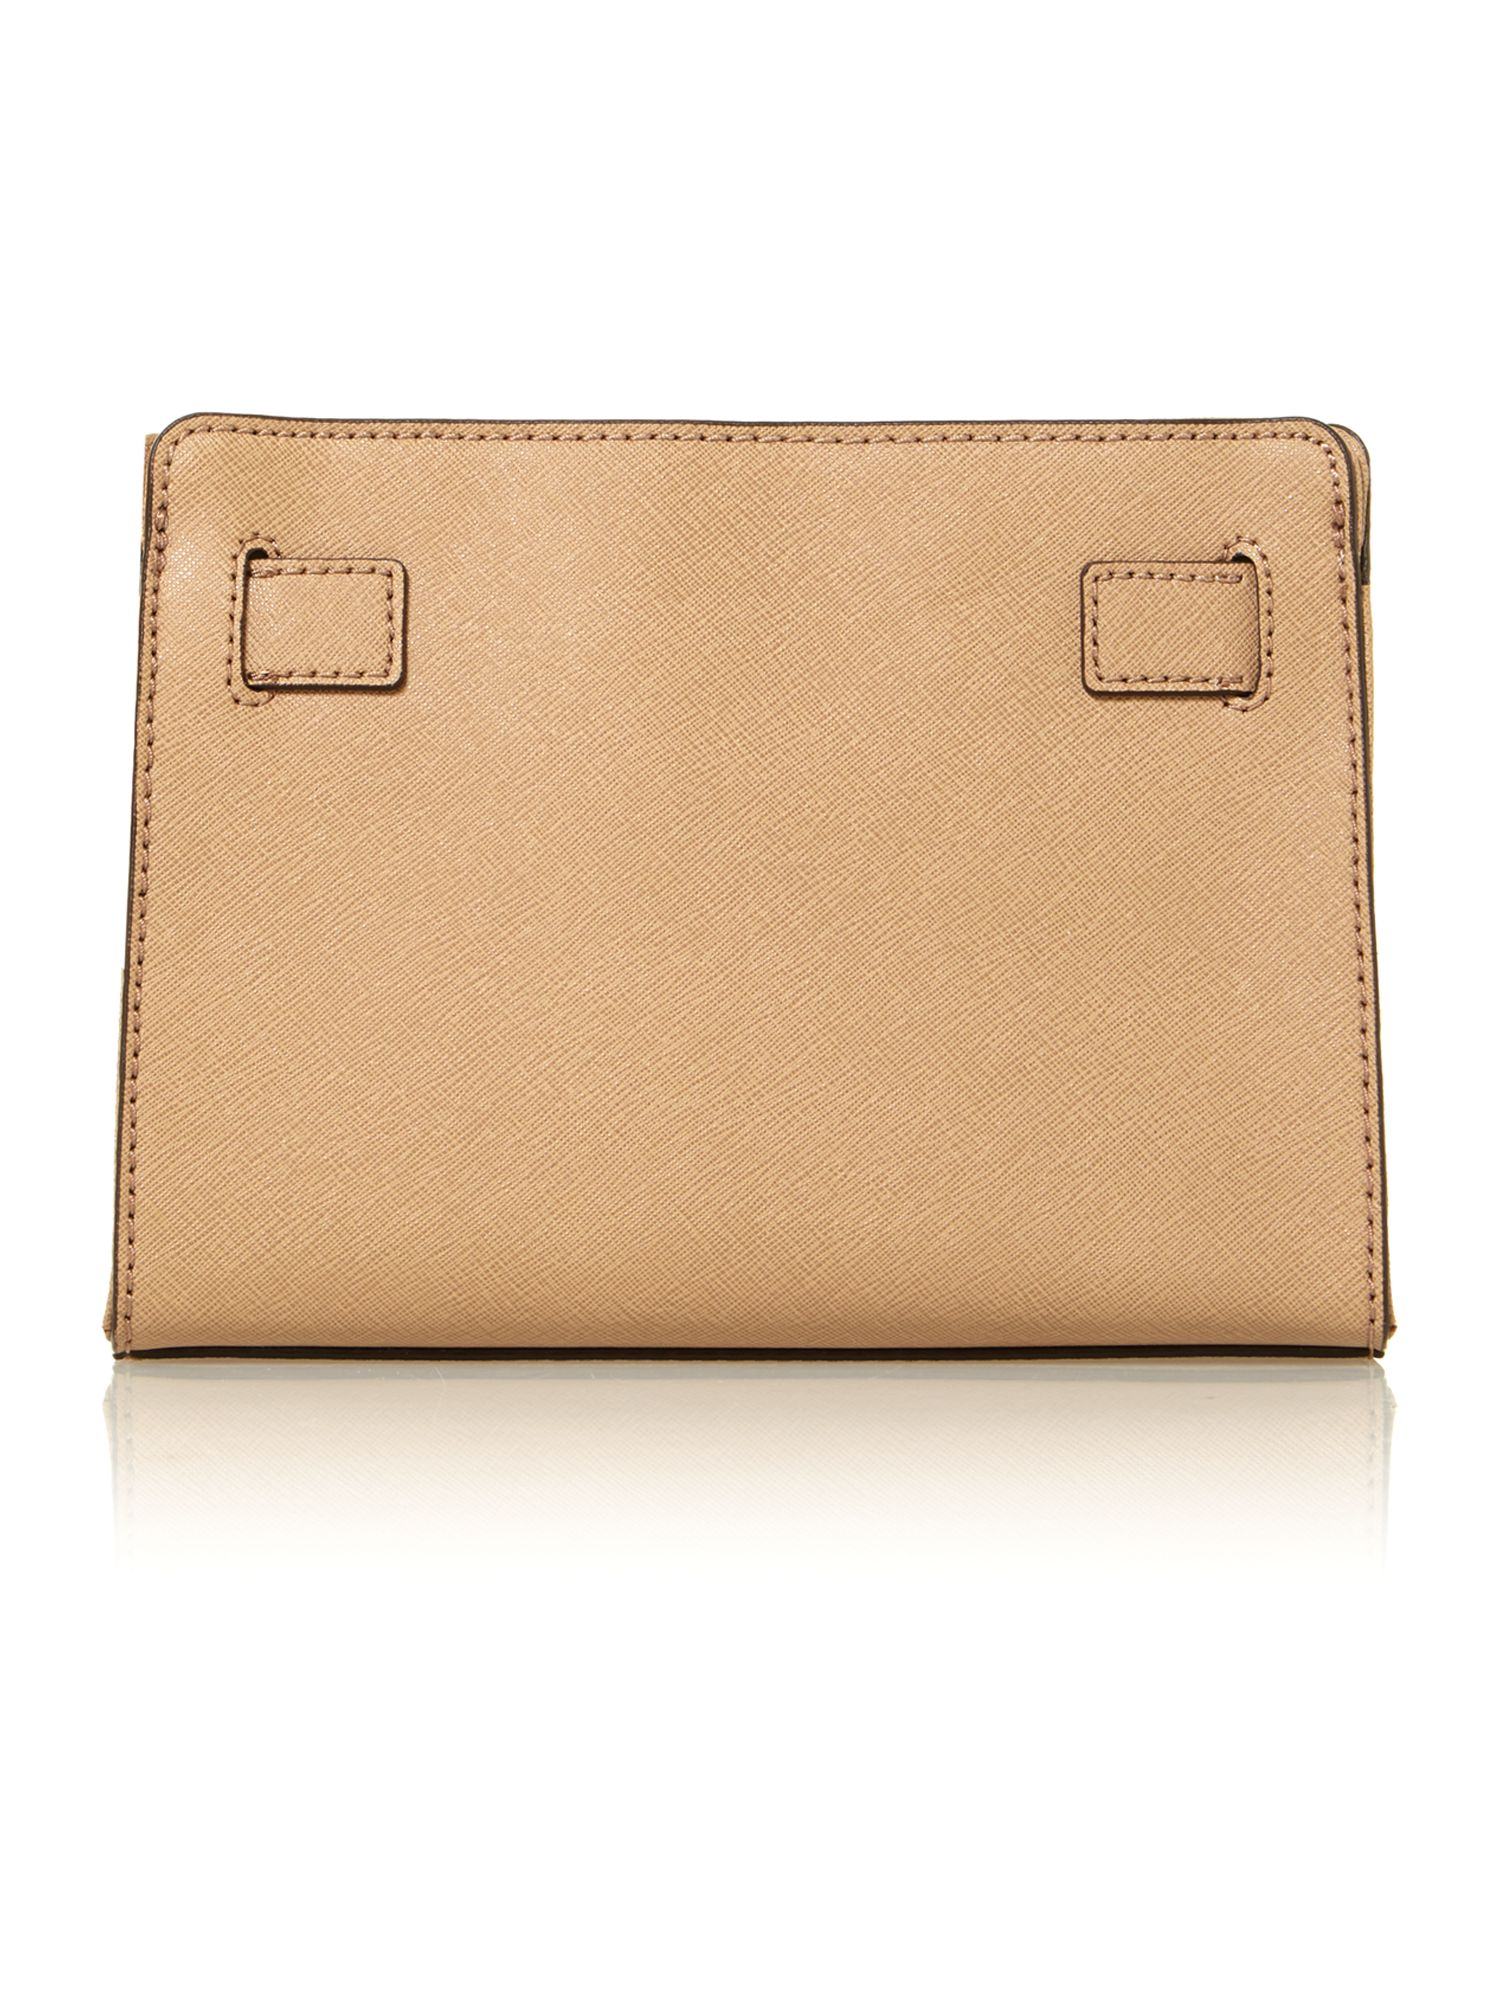 Hamilton small taupe shoulder bag